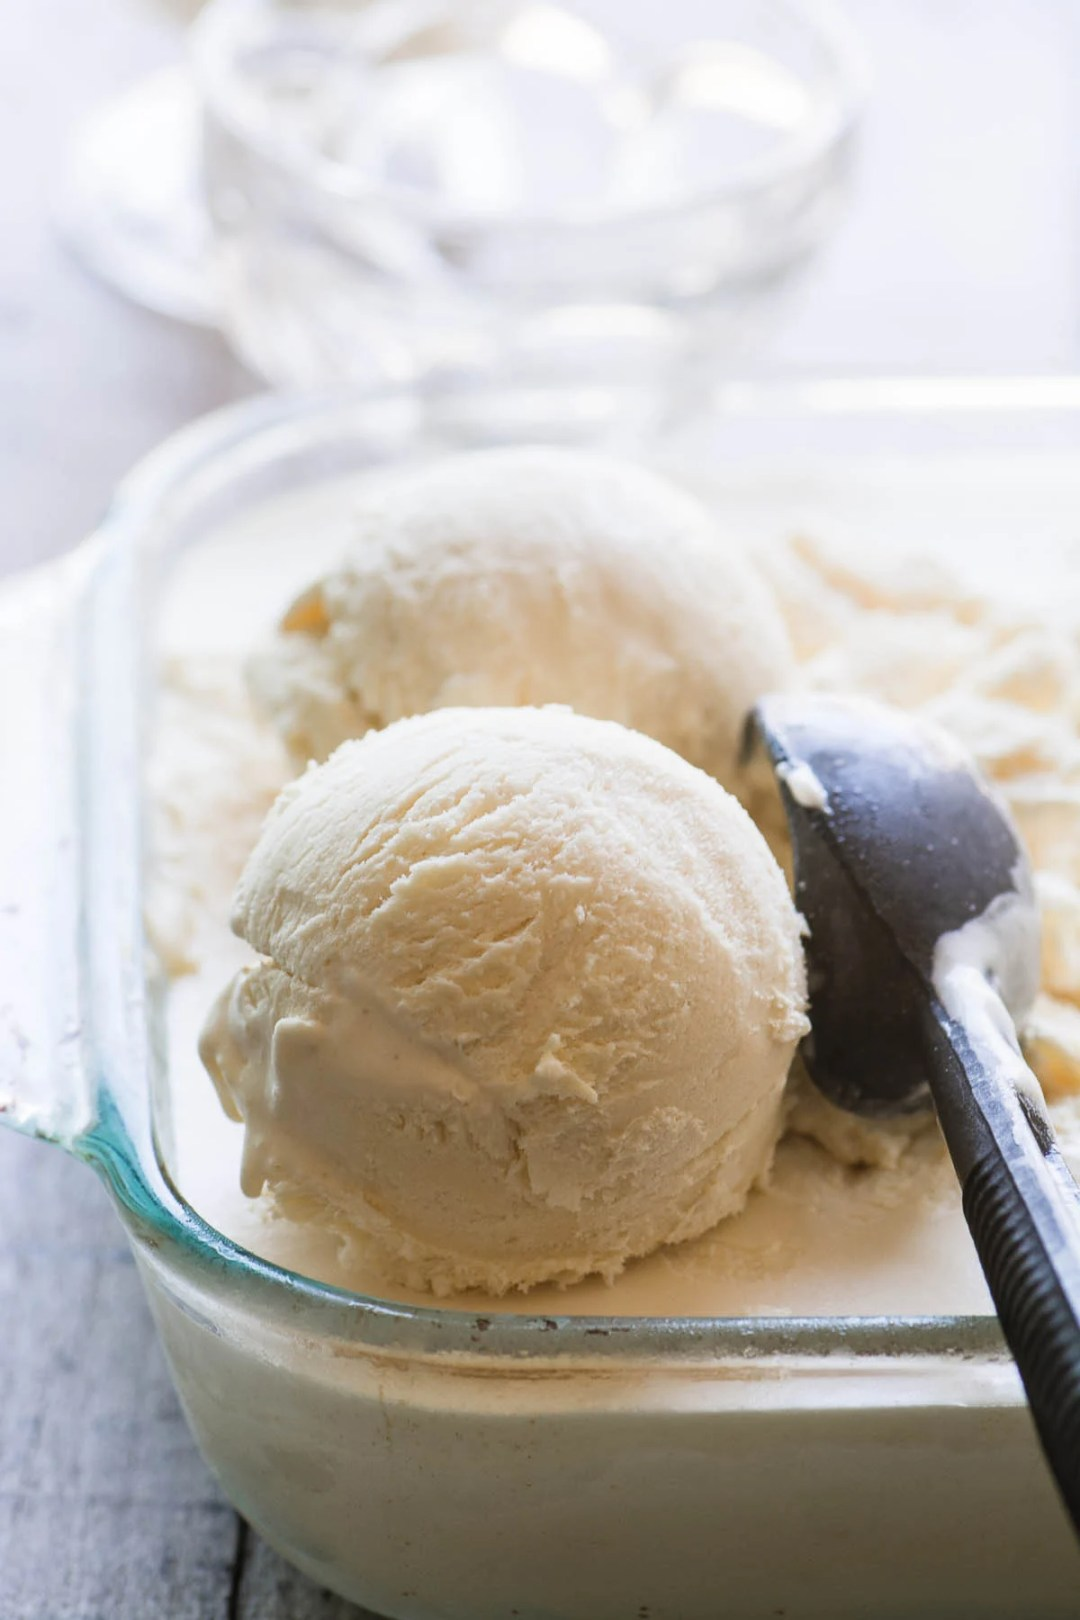 Scoops of Ballymaloe no churn vanilla ice cream with vintage ice cream scoop in glass container